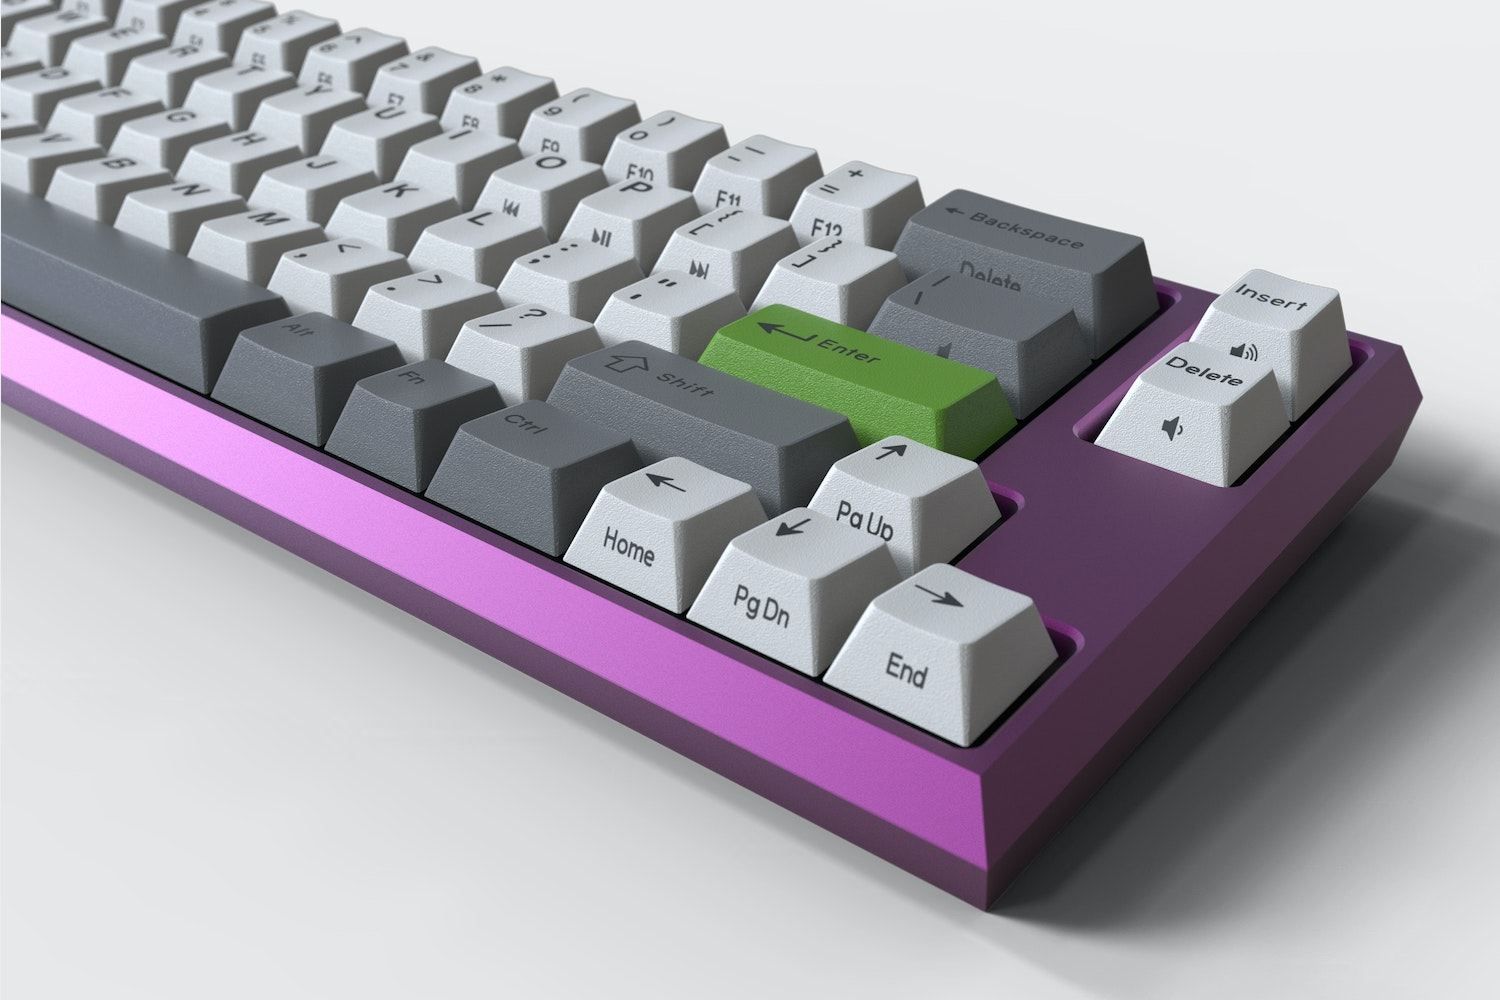 Clueboard 66% Custom Mechanical Keyboard Kit